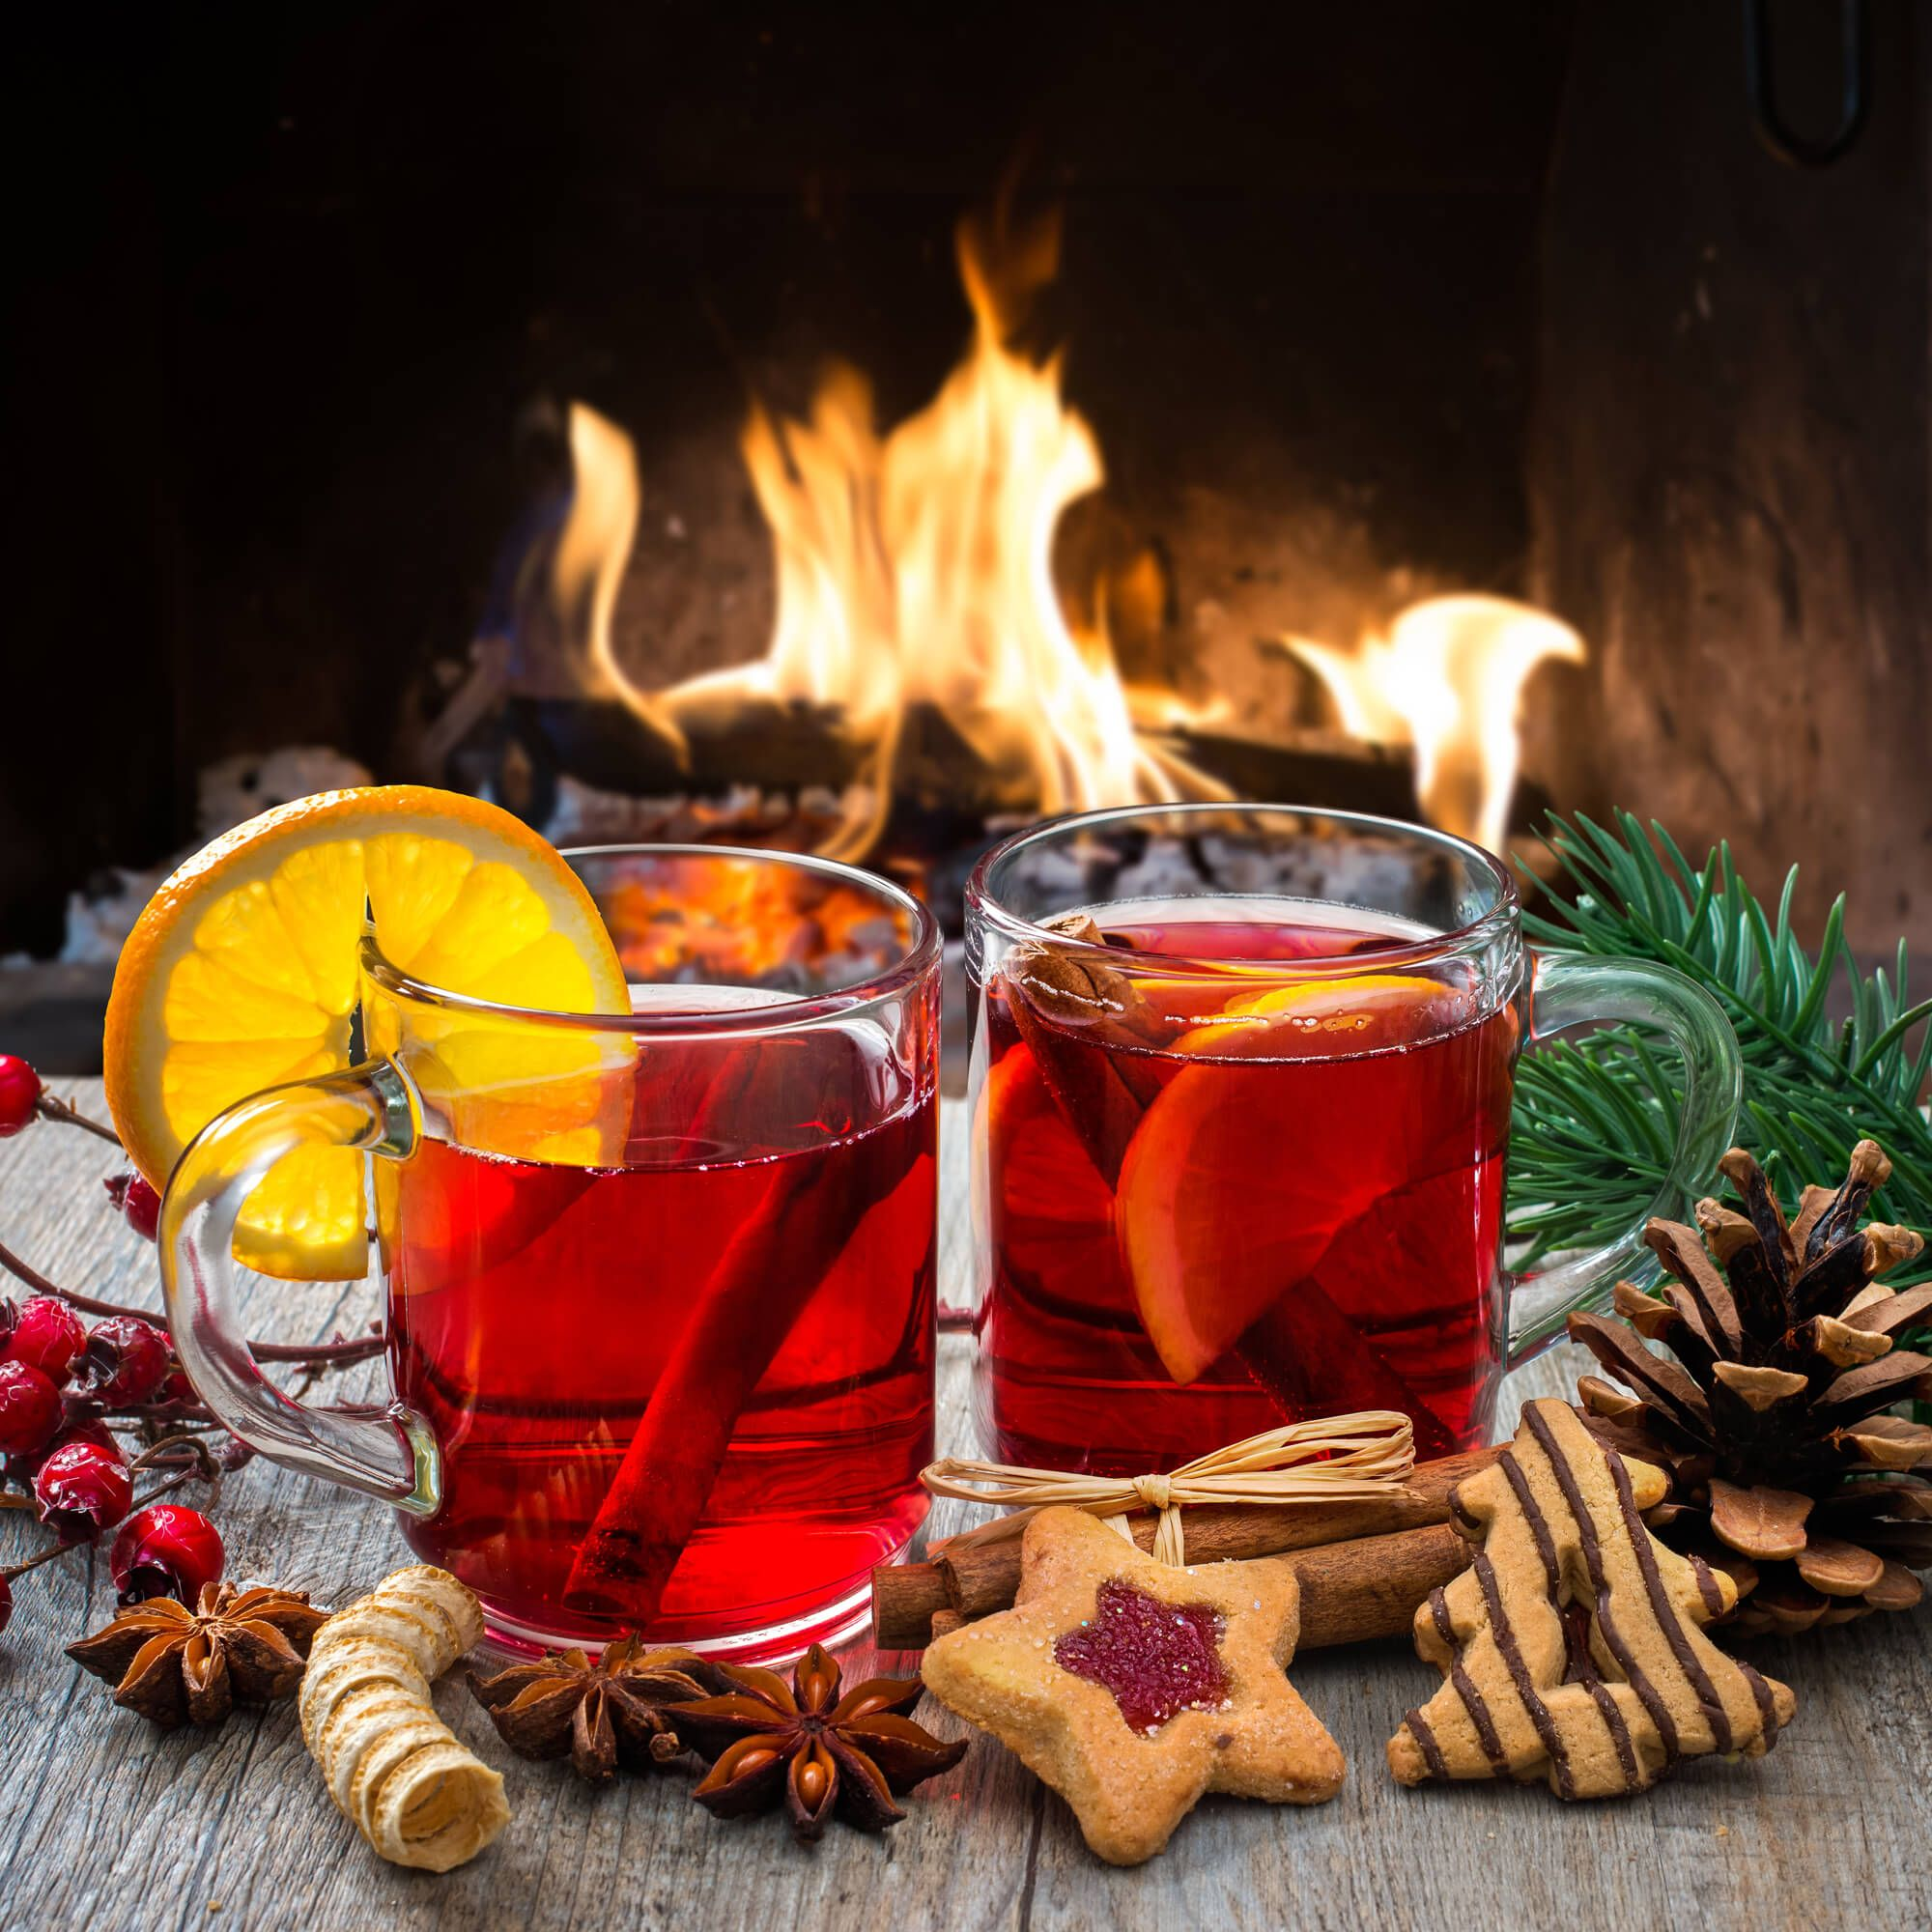 Kinderpunsch (German Non-Alcoholic Christmas Punch